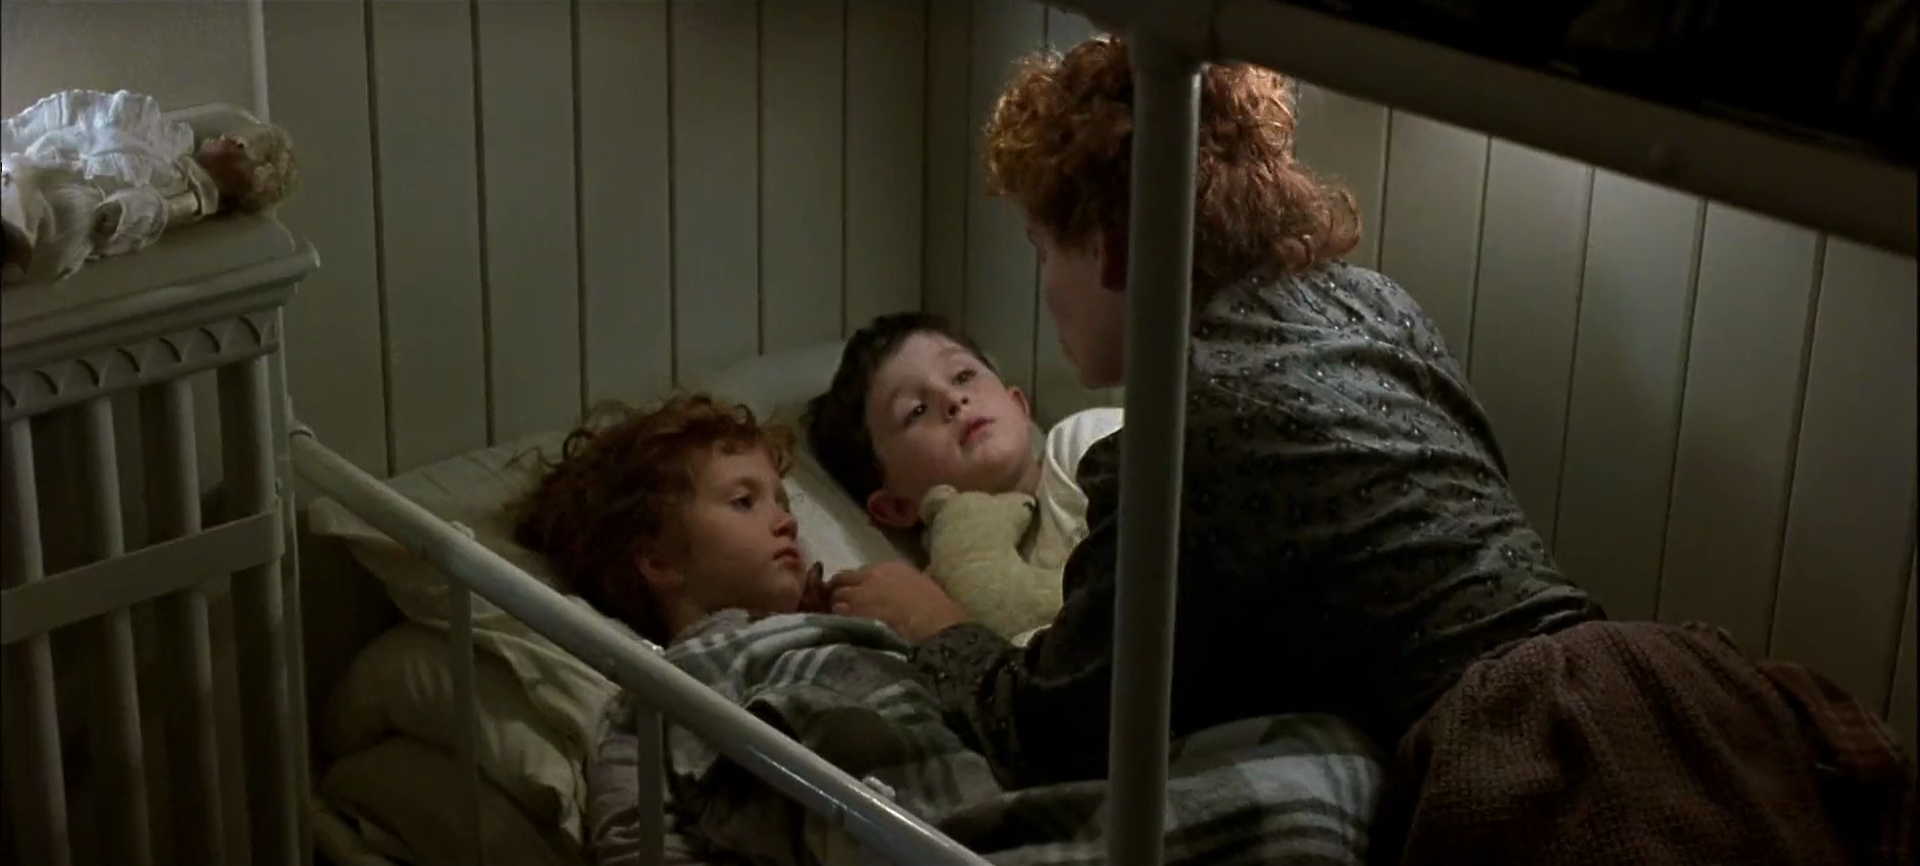 Which scene from Titanic made you cry the most? - Quora